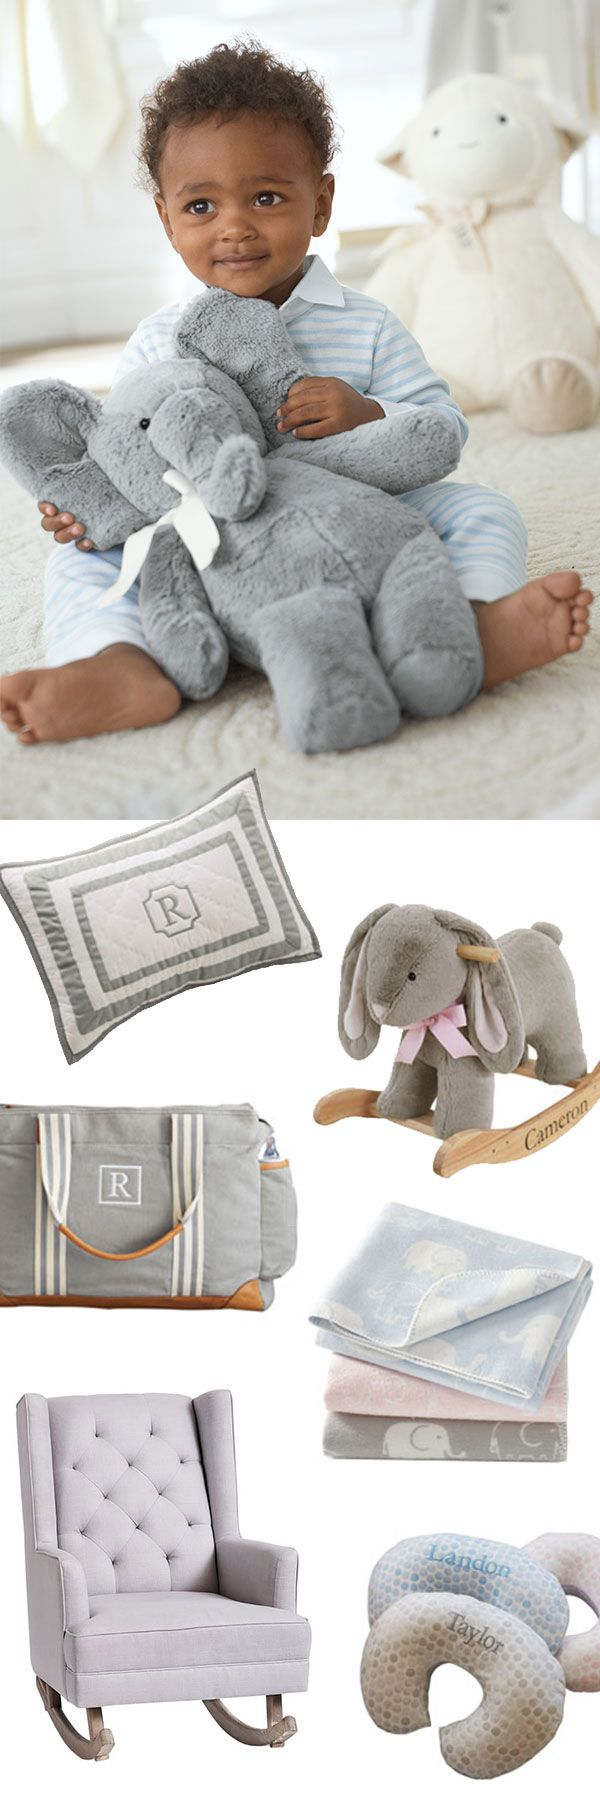 Not sure what to put on your registry? Make sure to include essentials like soft baby blankets (you'll never have too many!), a diaper bag with plenty of pockets and a Boppy Pillow for easy feedings. A bigger item like a rocker or glider for the nursery is also great to include.